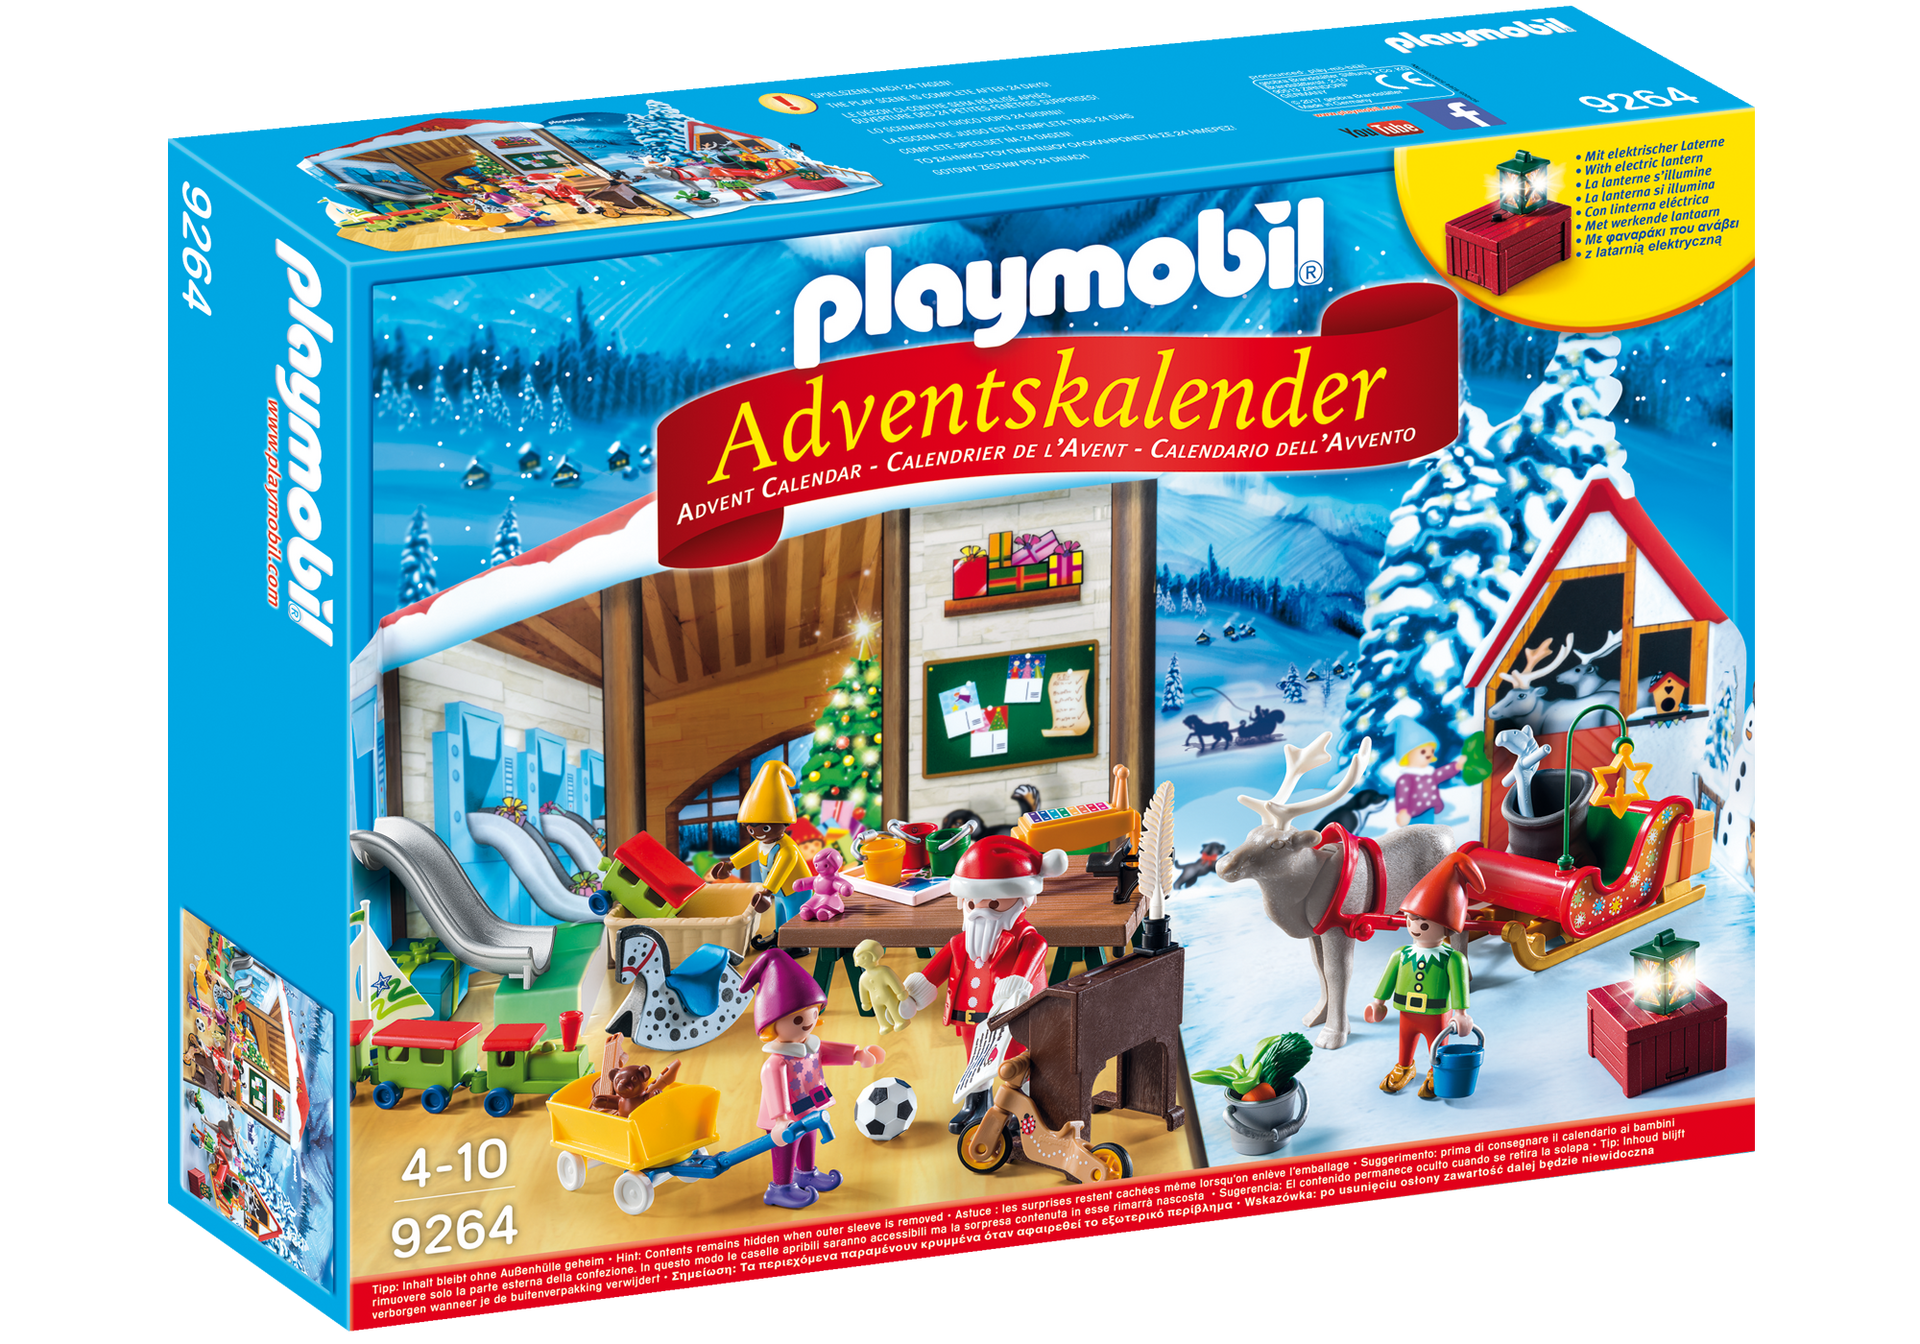 adventskalender wichtelwerkstatt 9264 playmobil deutschland. Black Bedroom Furniture Sets. Home Design Ideas